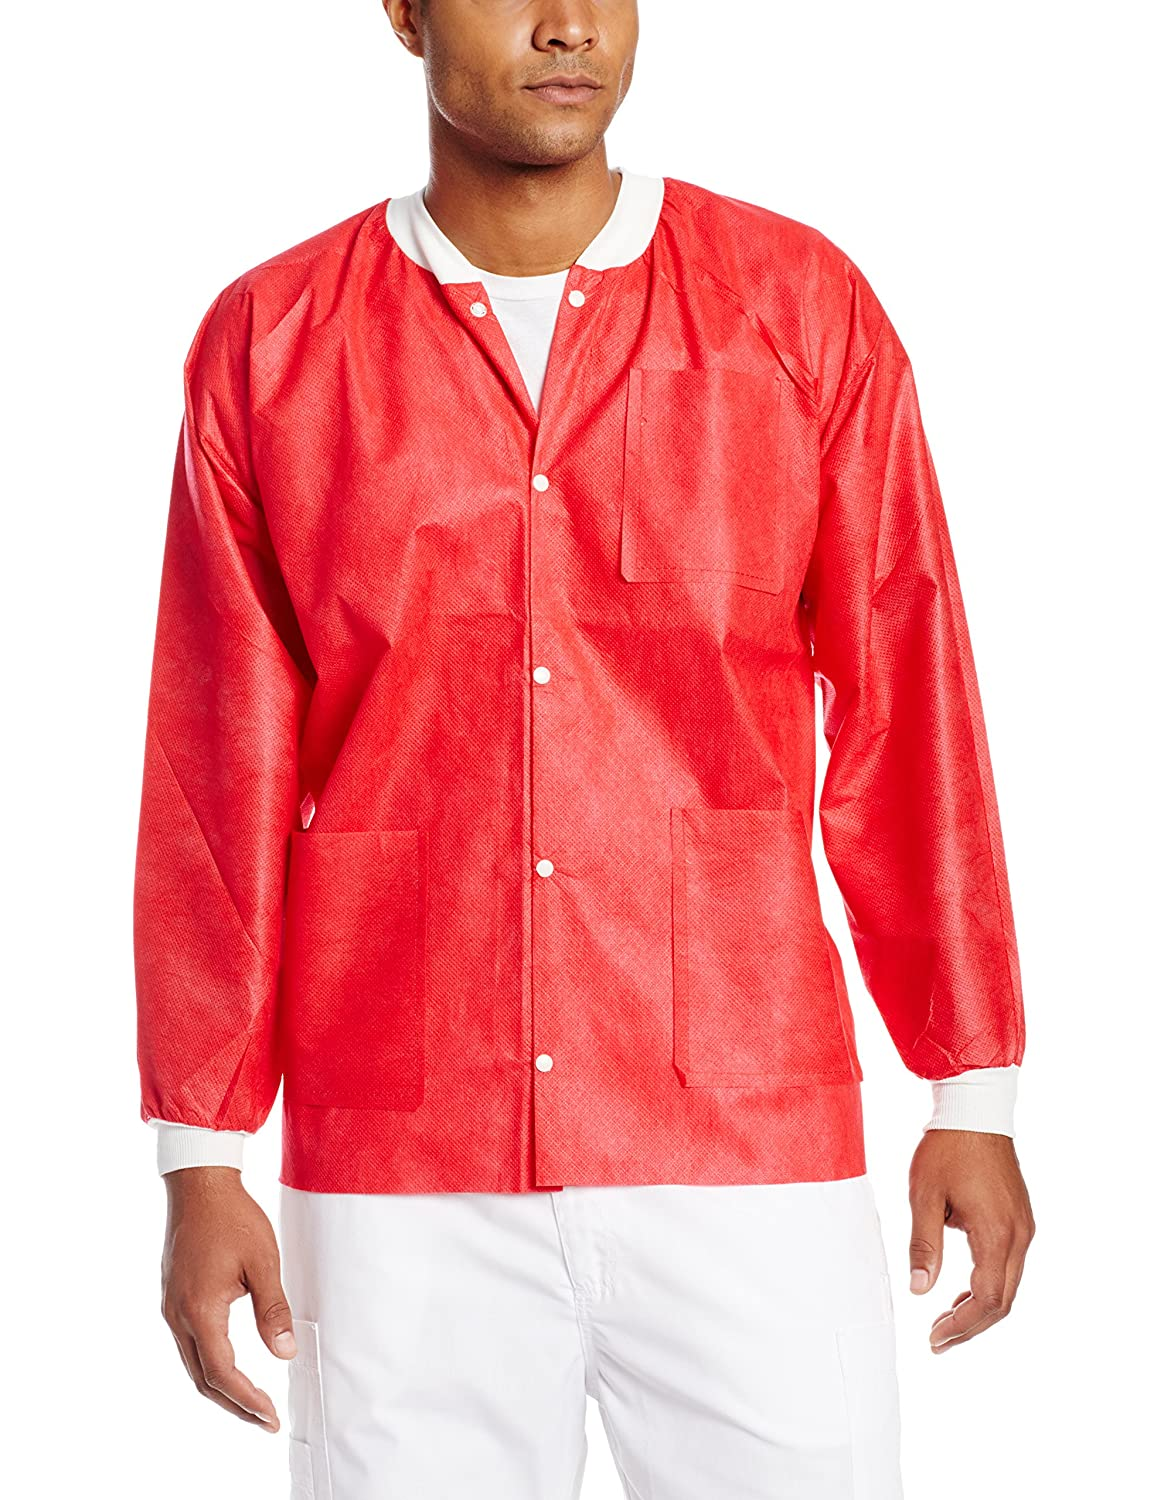 Pack of 10 Noble Looking Disposable SMS Hip Length Jacket ValuMax 3630RDL Extra-Safe L Wrinkle-Free Red